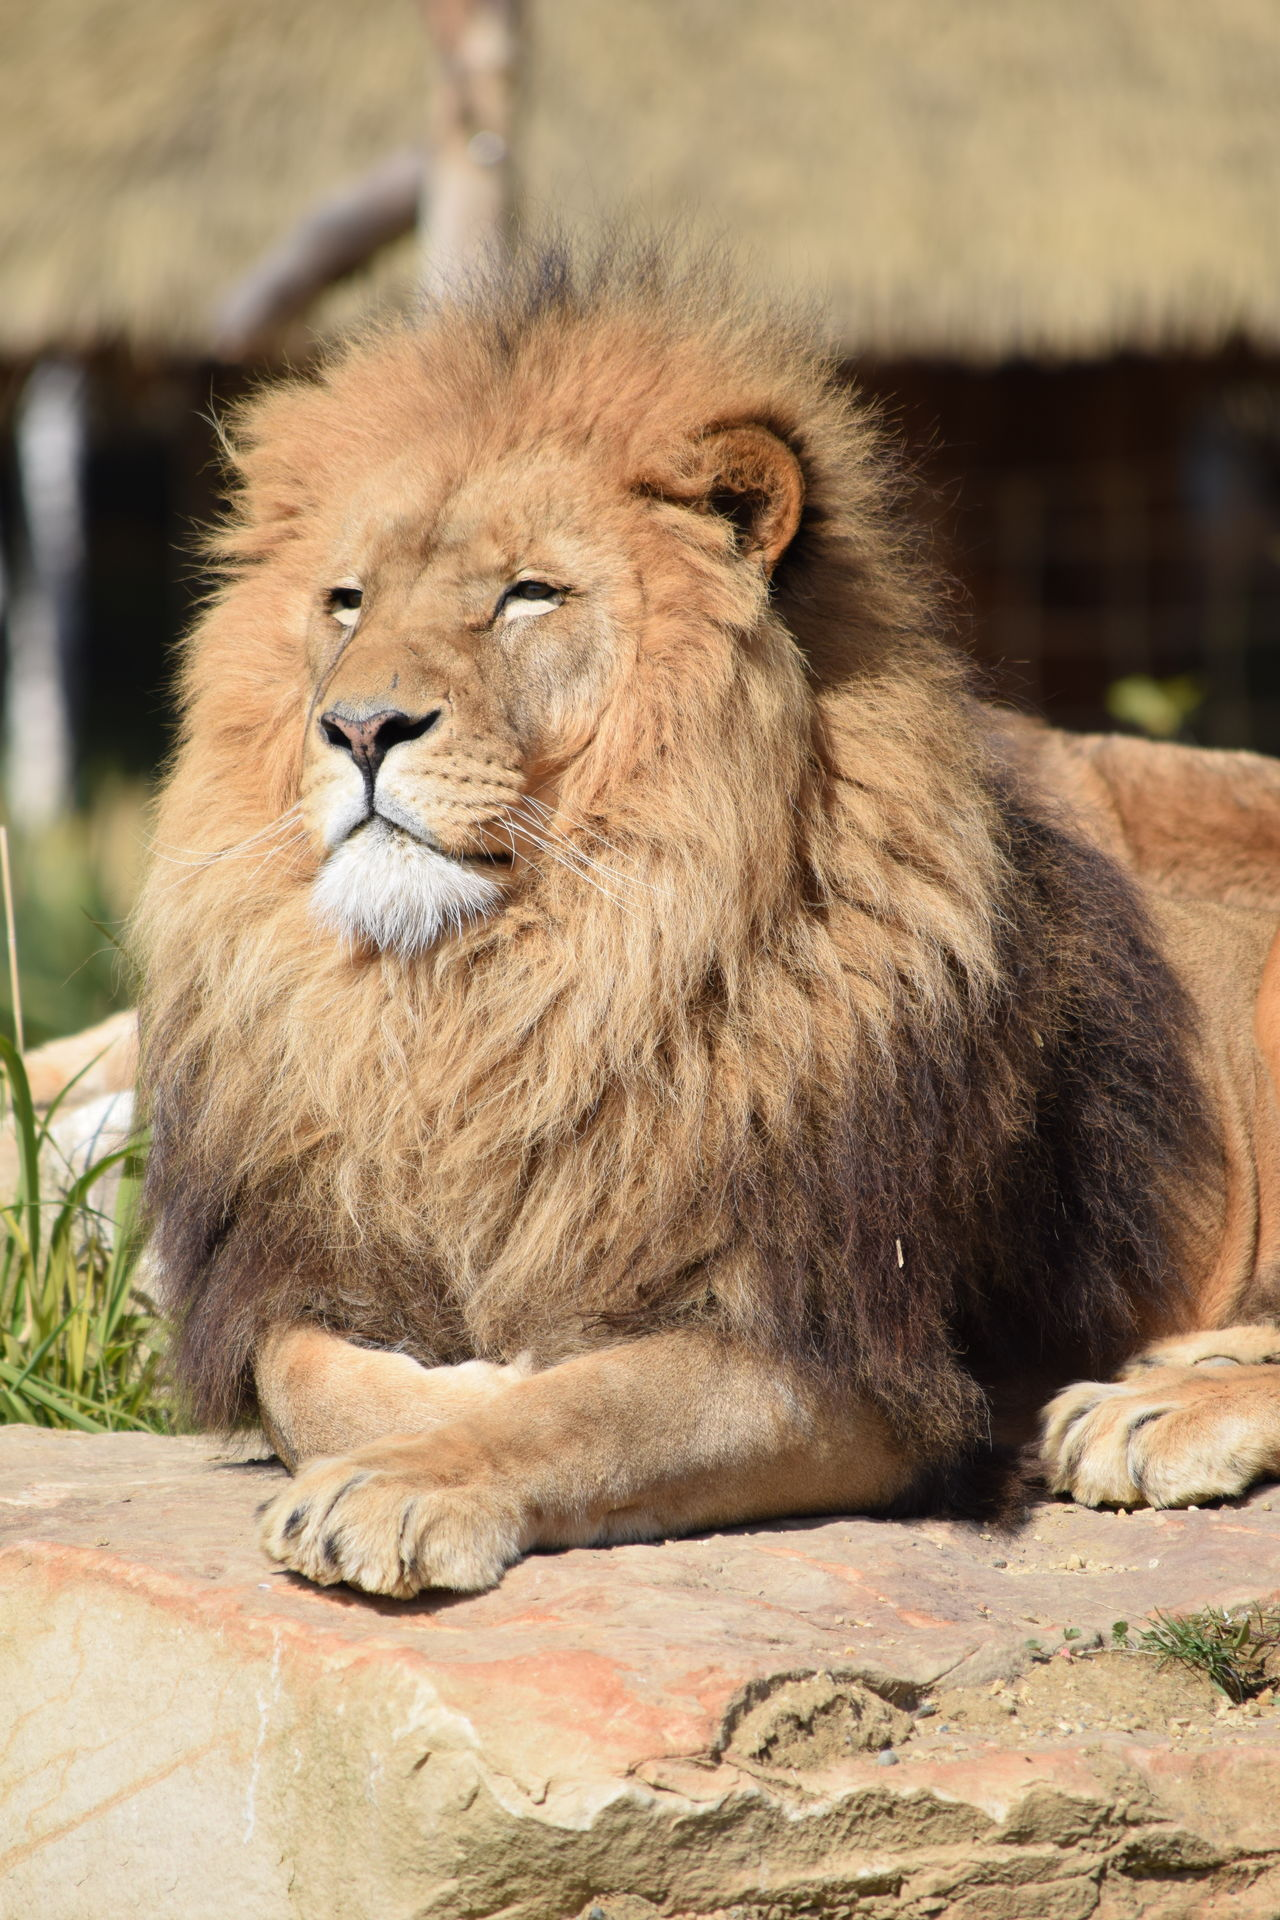 lion Animal Themes Animal Wildlife Animals In The Wild Close-up Day Feline Full Length King Lion Mammal Nature No People One Animal Outdoors Powerful Rock Sitting Strong